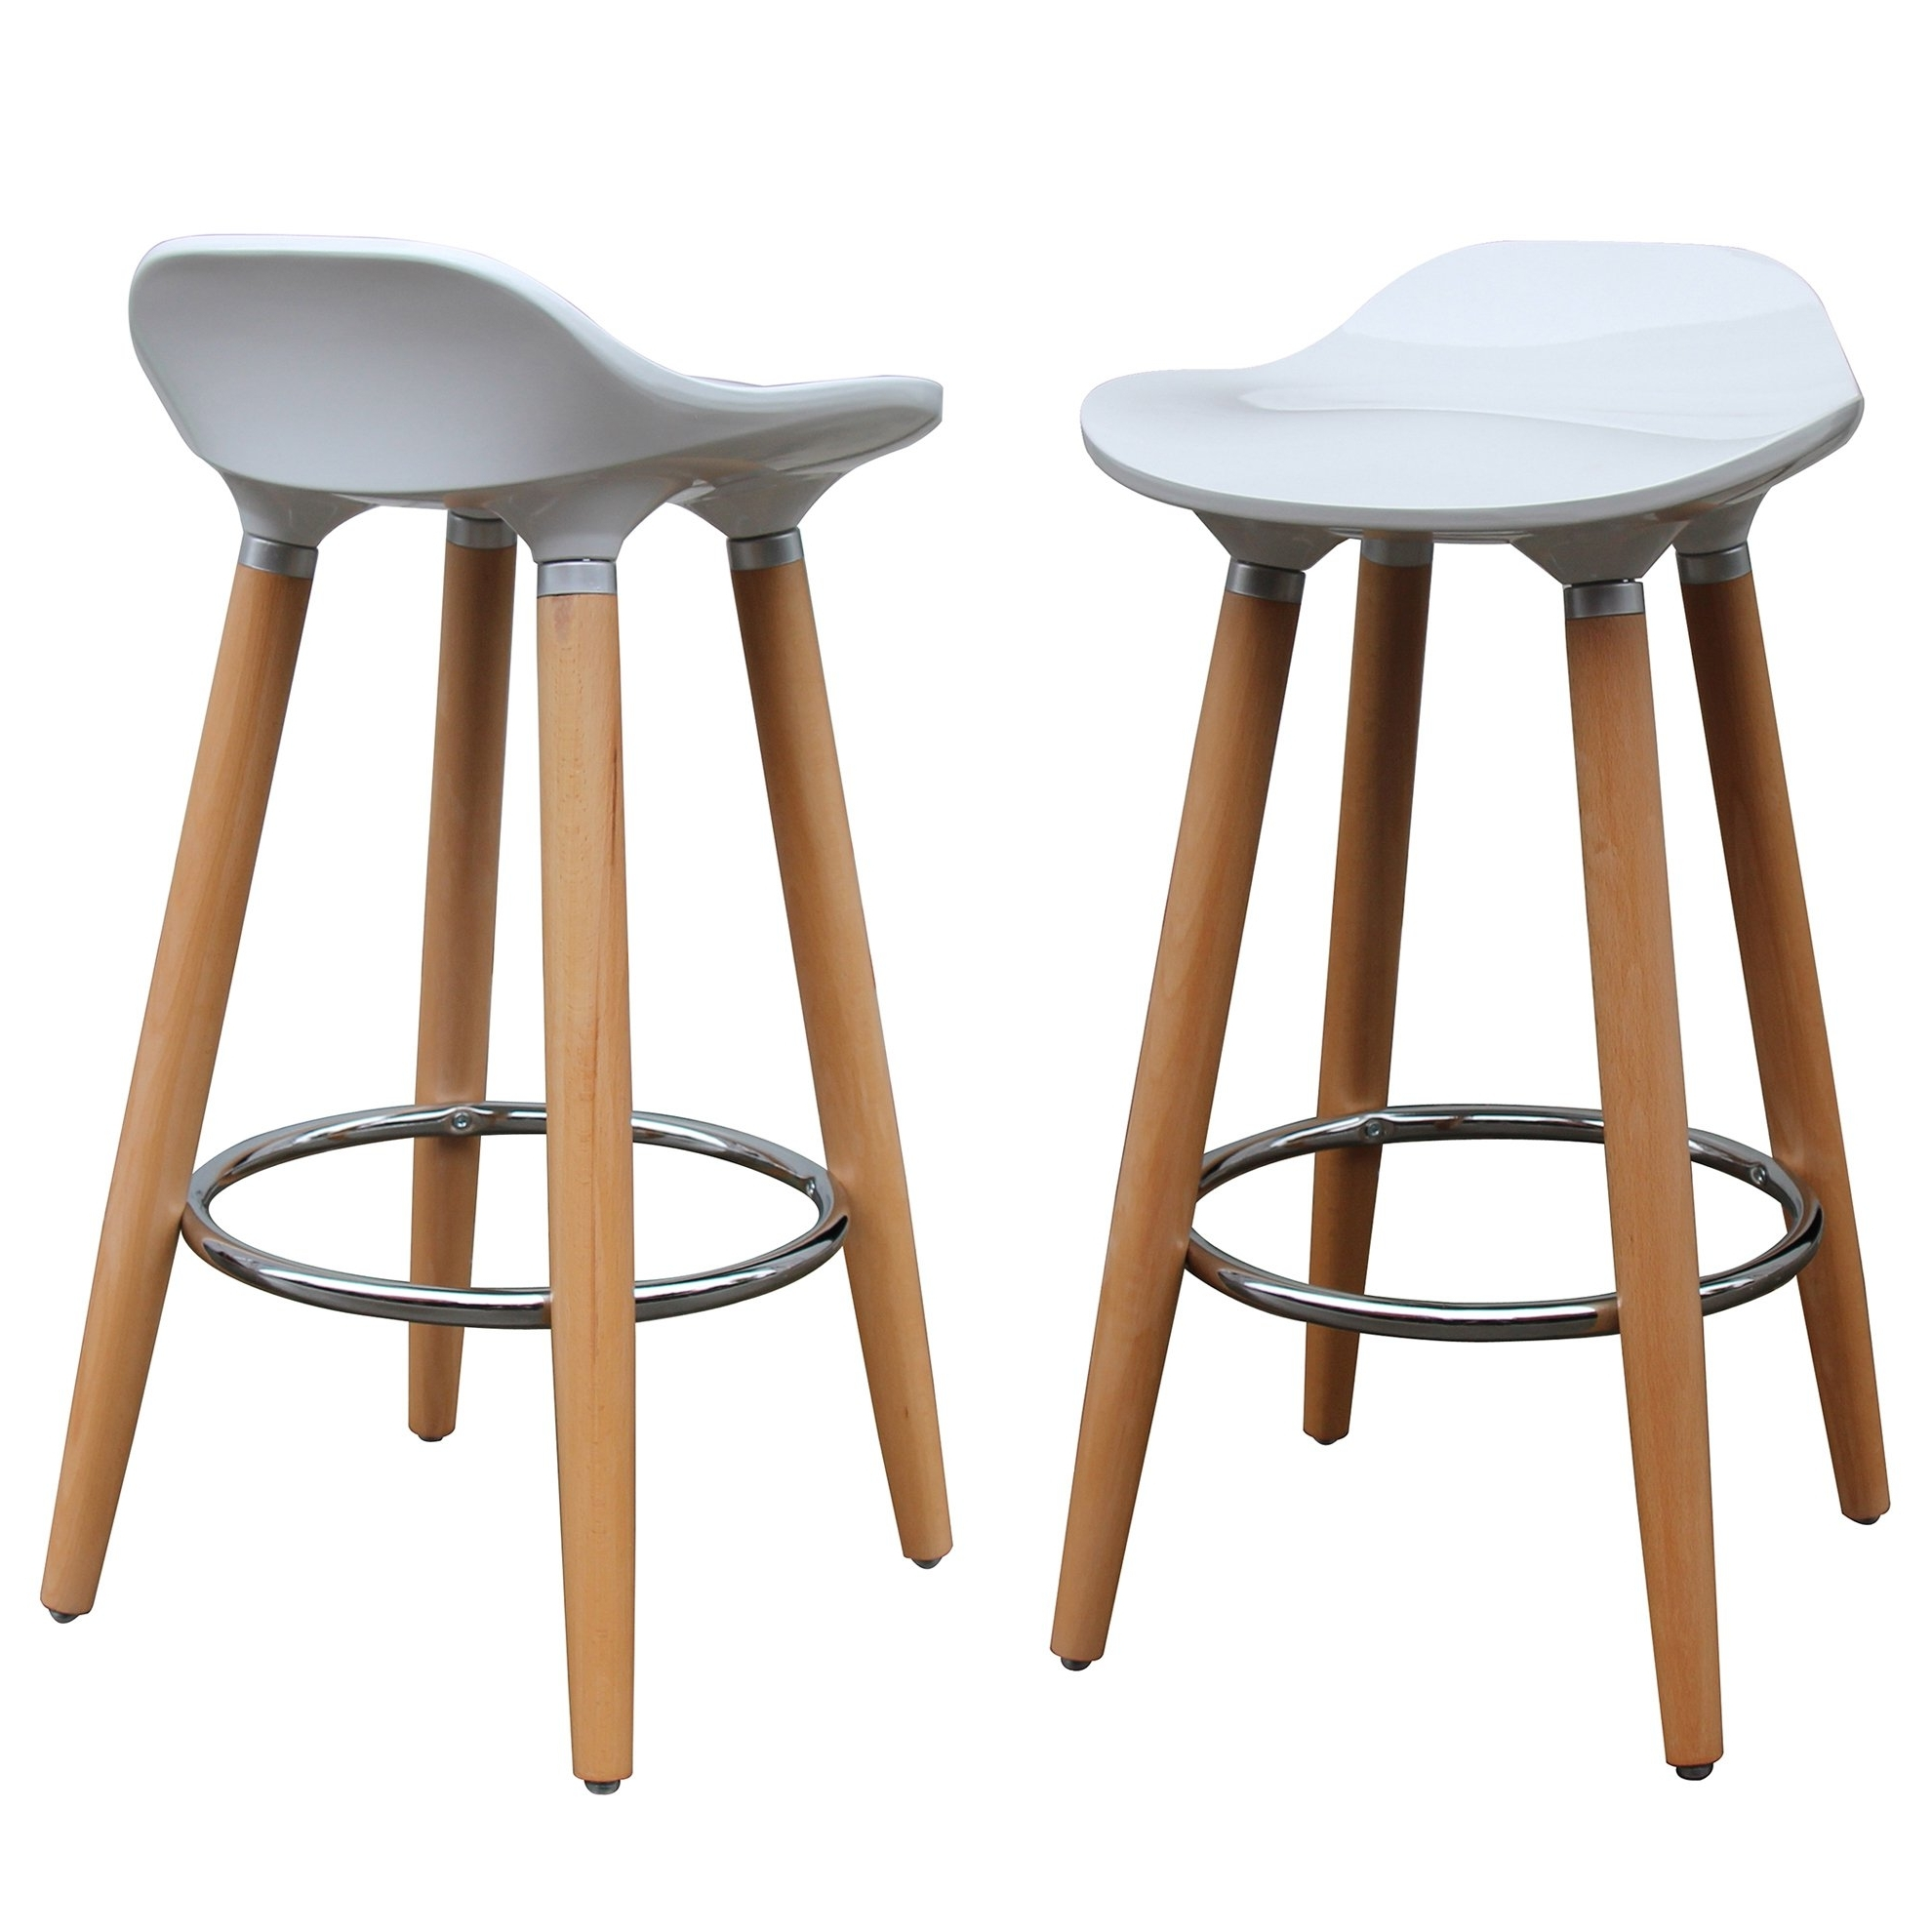 Laurent 7 Piece Counter Sets With Upholstered Counterstools Intended For Latest Shop Trex 26 Inch Counter Stool (Set Of 2) – Free Shipping Today (View 9 of 25)